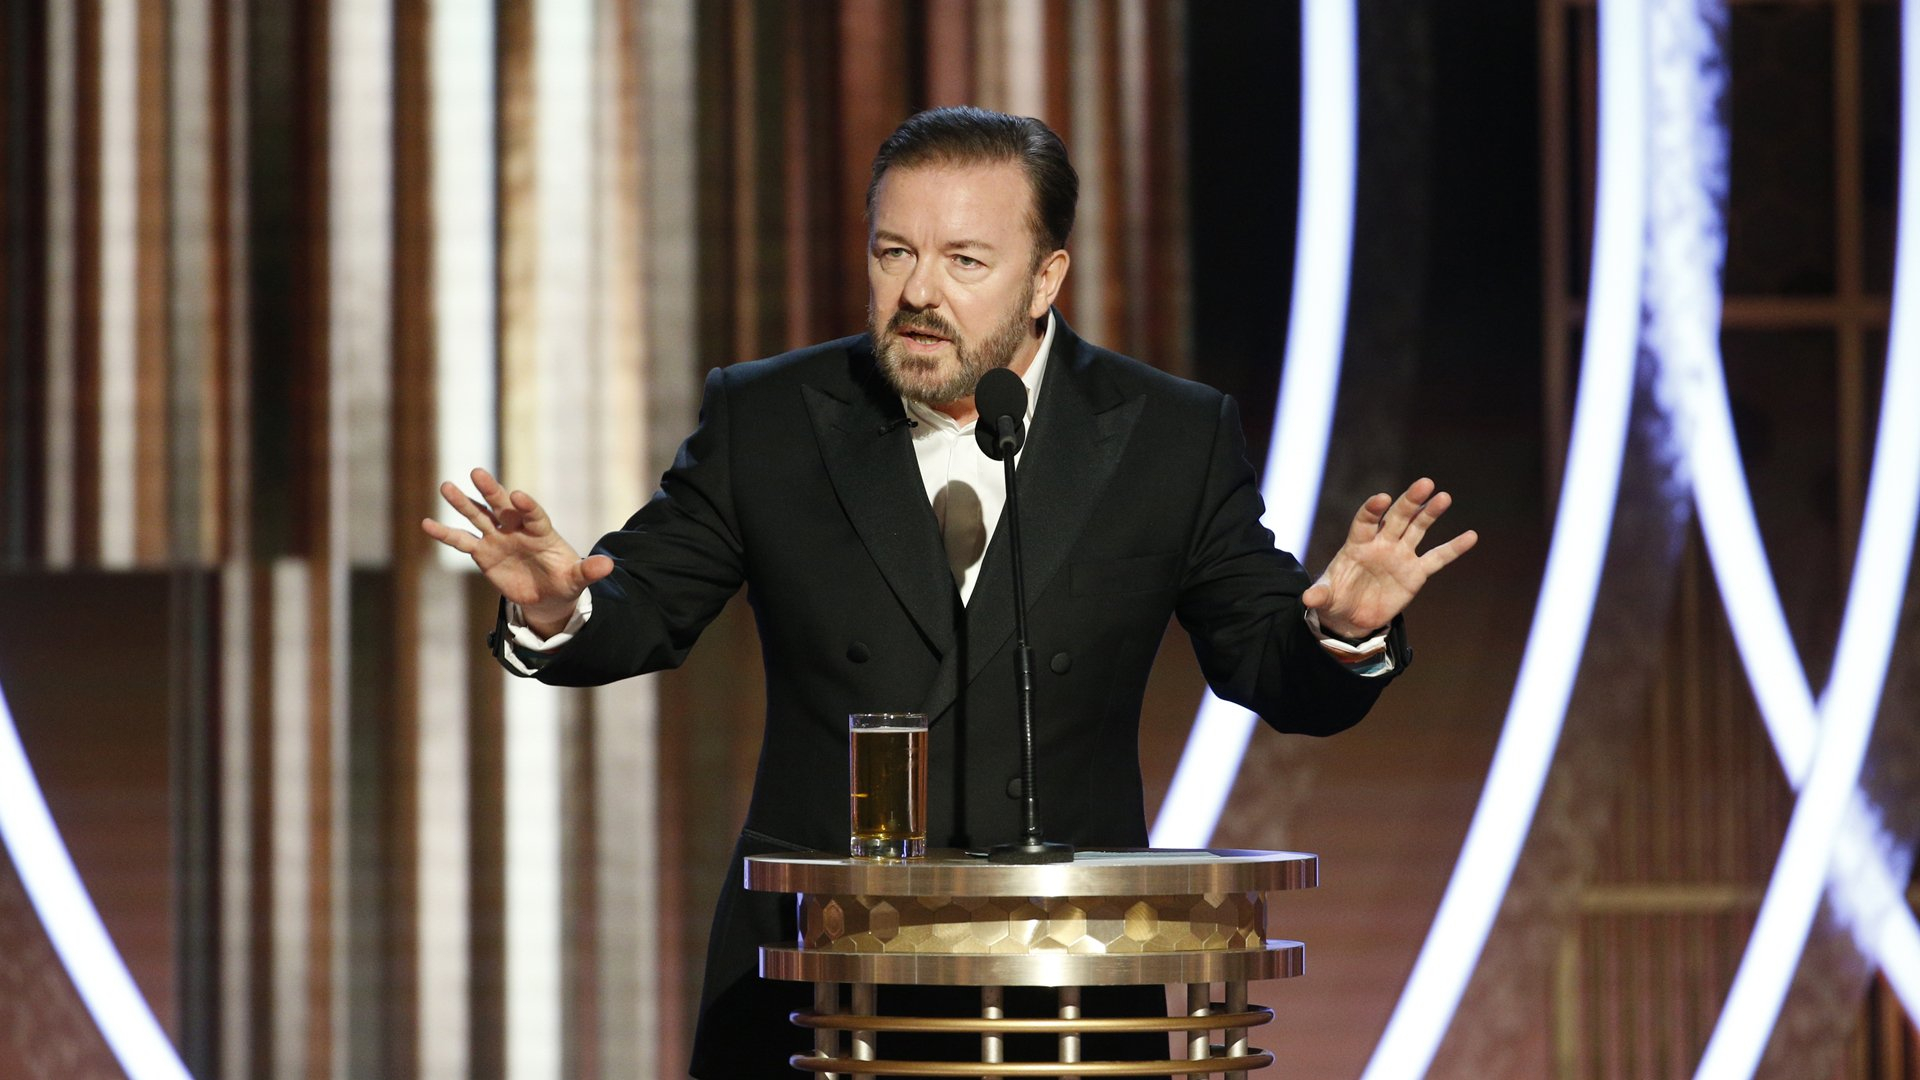 In this handout photo provided by NBCUniversal Media, LLC, host Ricky Gervais speaks onstage during the 76th Annual Golden Globe Awards at The Beverly Hilton Hotel on January 5, 2020 in Beverly Hills, California. (Credit: Paul Drinkwater/NBCUniversal Media, LLC via Getty Images)